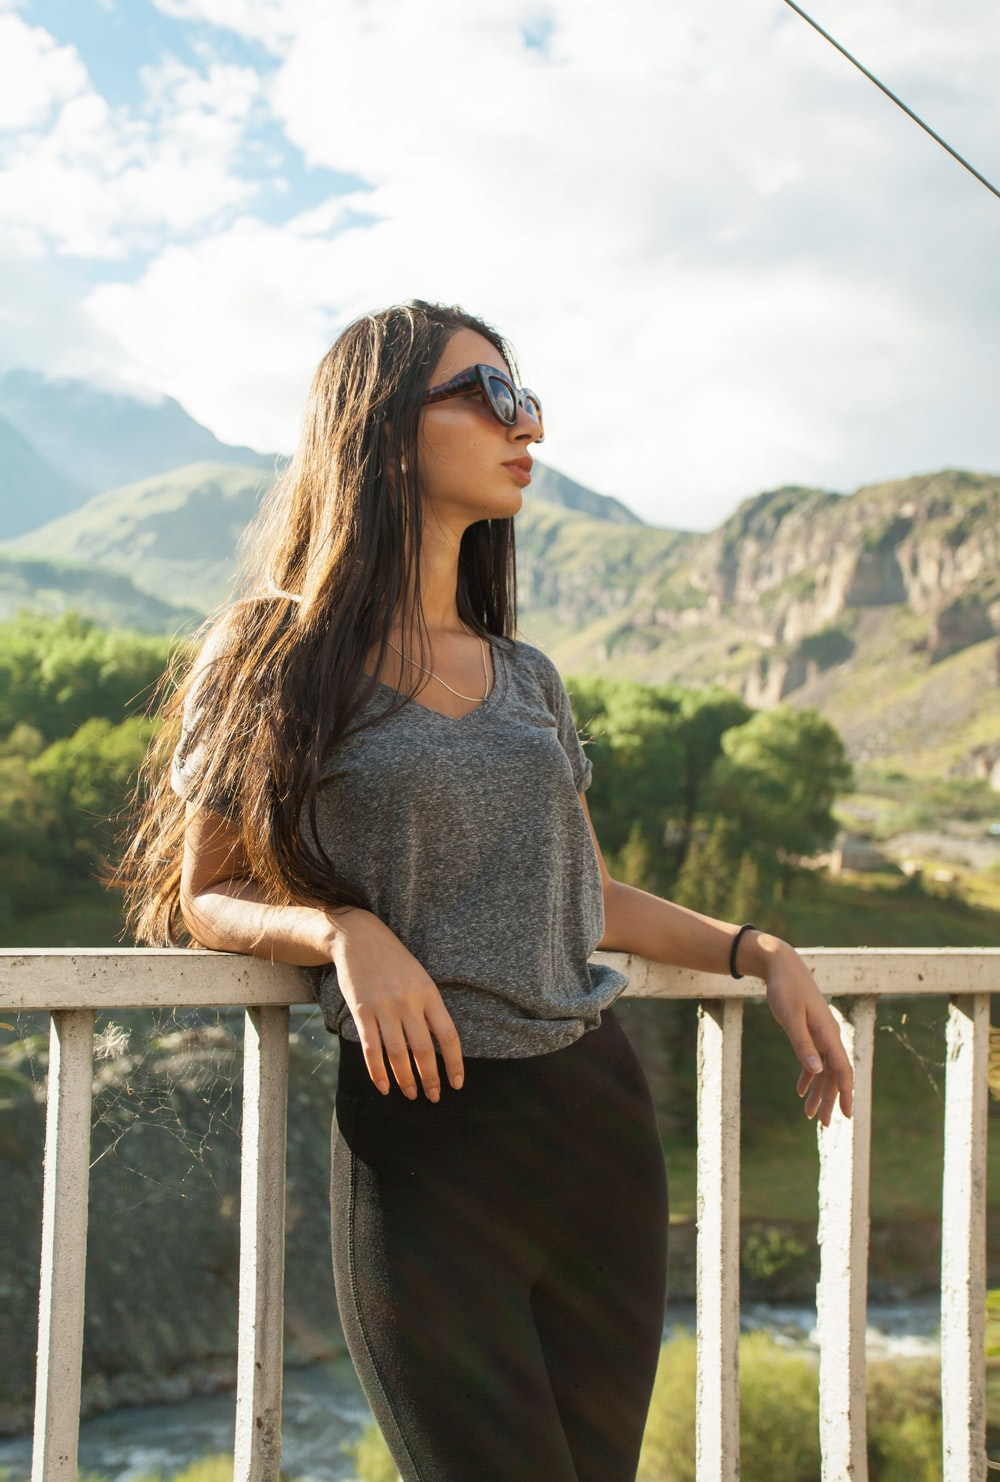 woman in gray crew neck shirt and black pants wearing black sunglasses standing on brown wooden